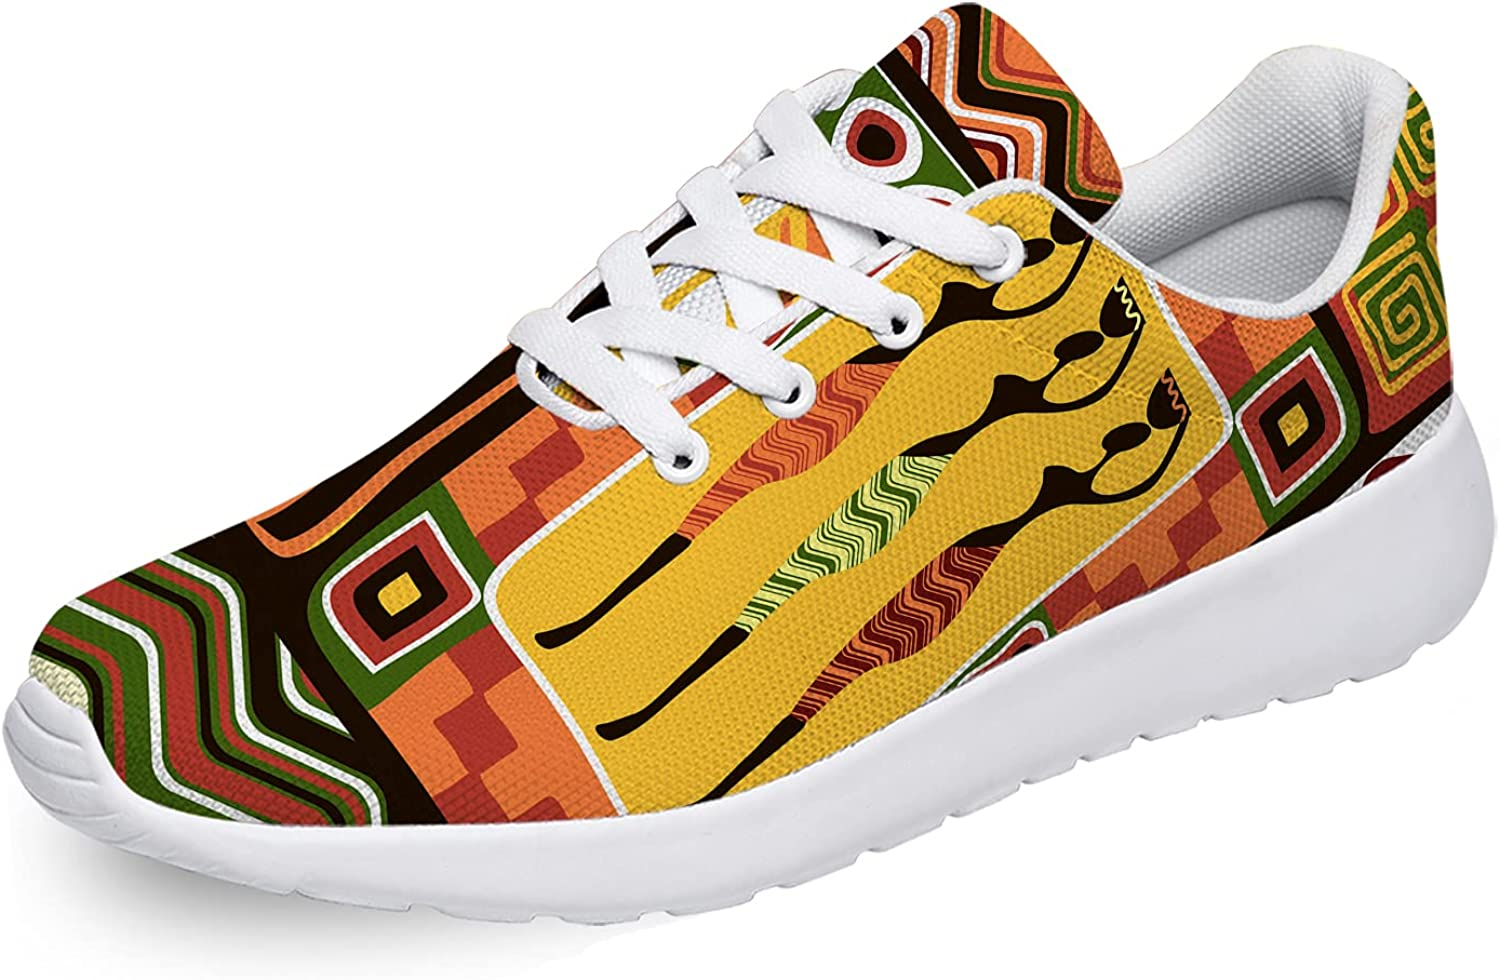 Ciadoon African Max 43% OFF Shoes Mens unisex Womens Running S Tennis Walking